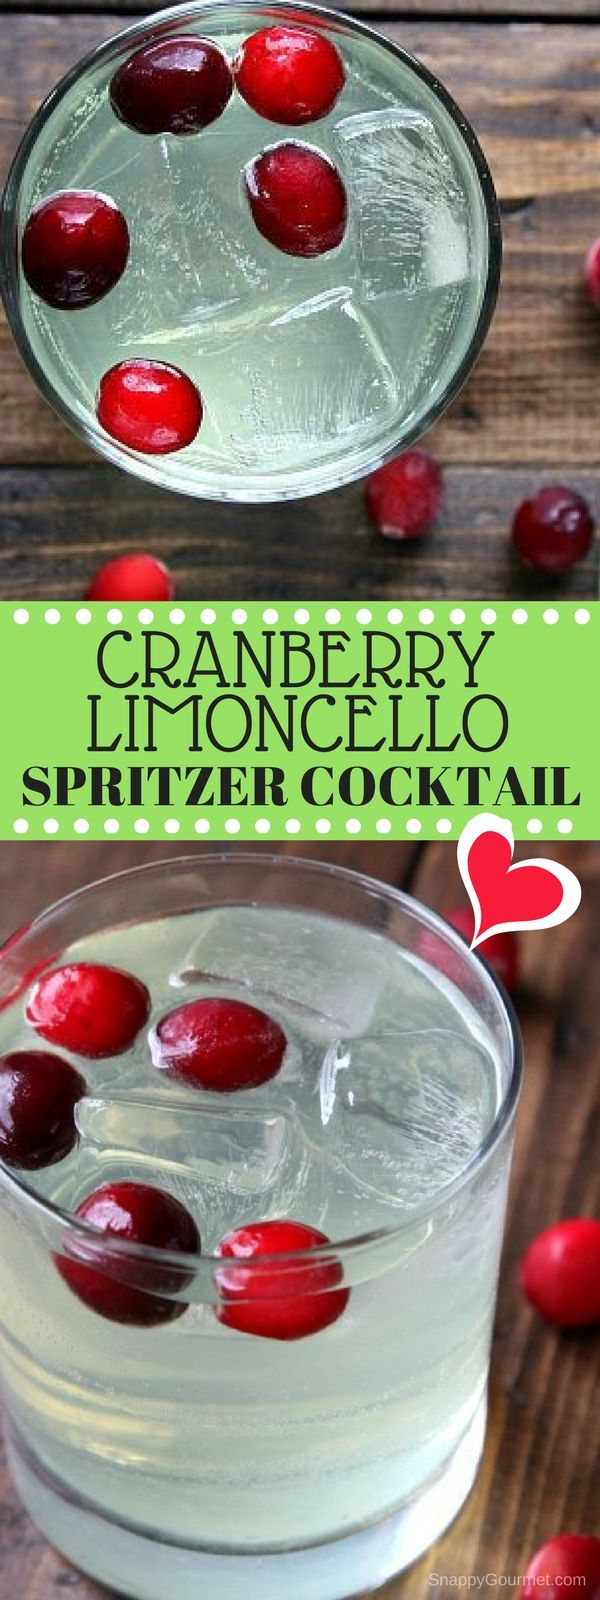 Cranberry Limoncello Spritzer Cocktail recipe - an easy winter holiday and Christmas party cocktail! SnappyGourmet.com #SnappyGourmet #Cocktail #Christmas #Drink #Party #Limoncello